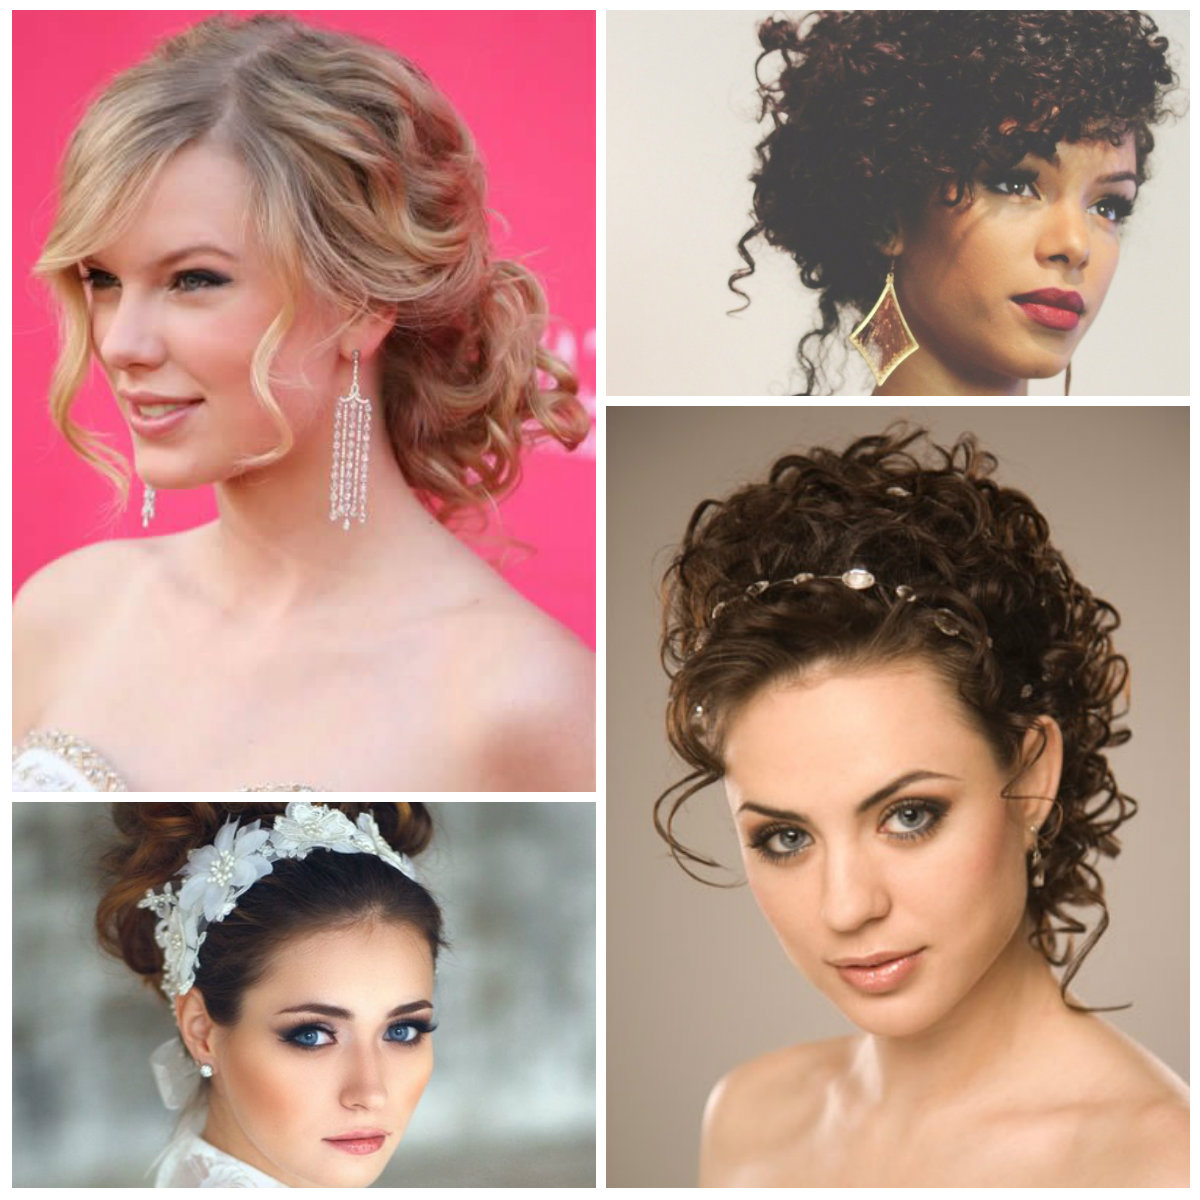 Most Recent Voluminous Curly Updo Hairstyles With Bangs For 25 Simple And Stunning Updo Hairstyles For Curly Hair – Haircuts (View 13 of 20)